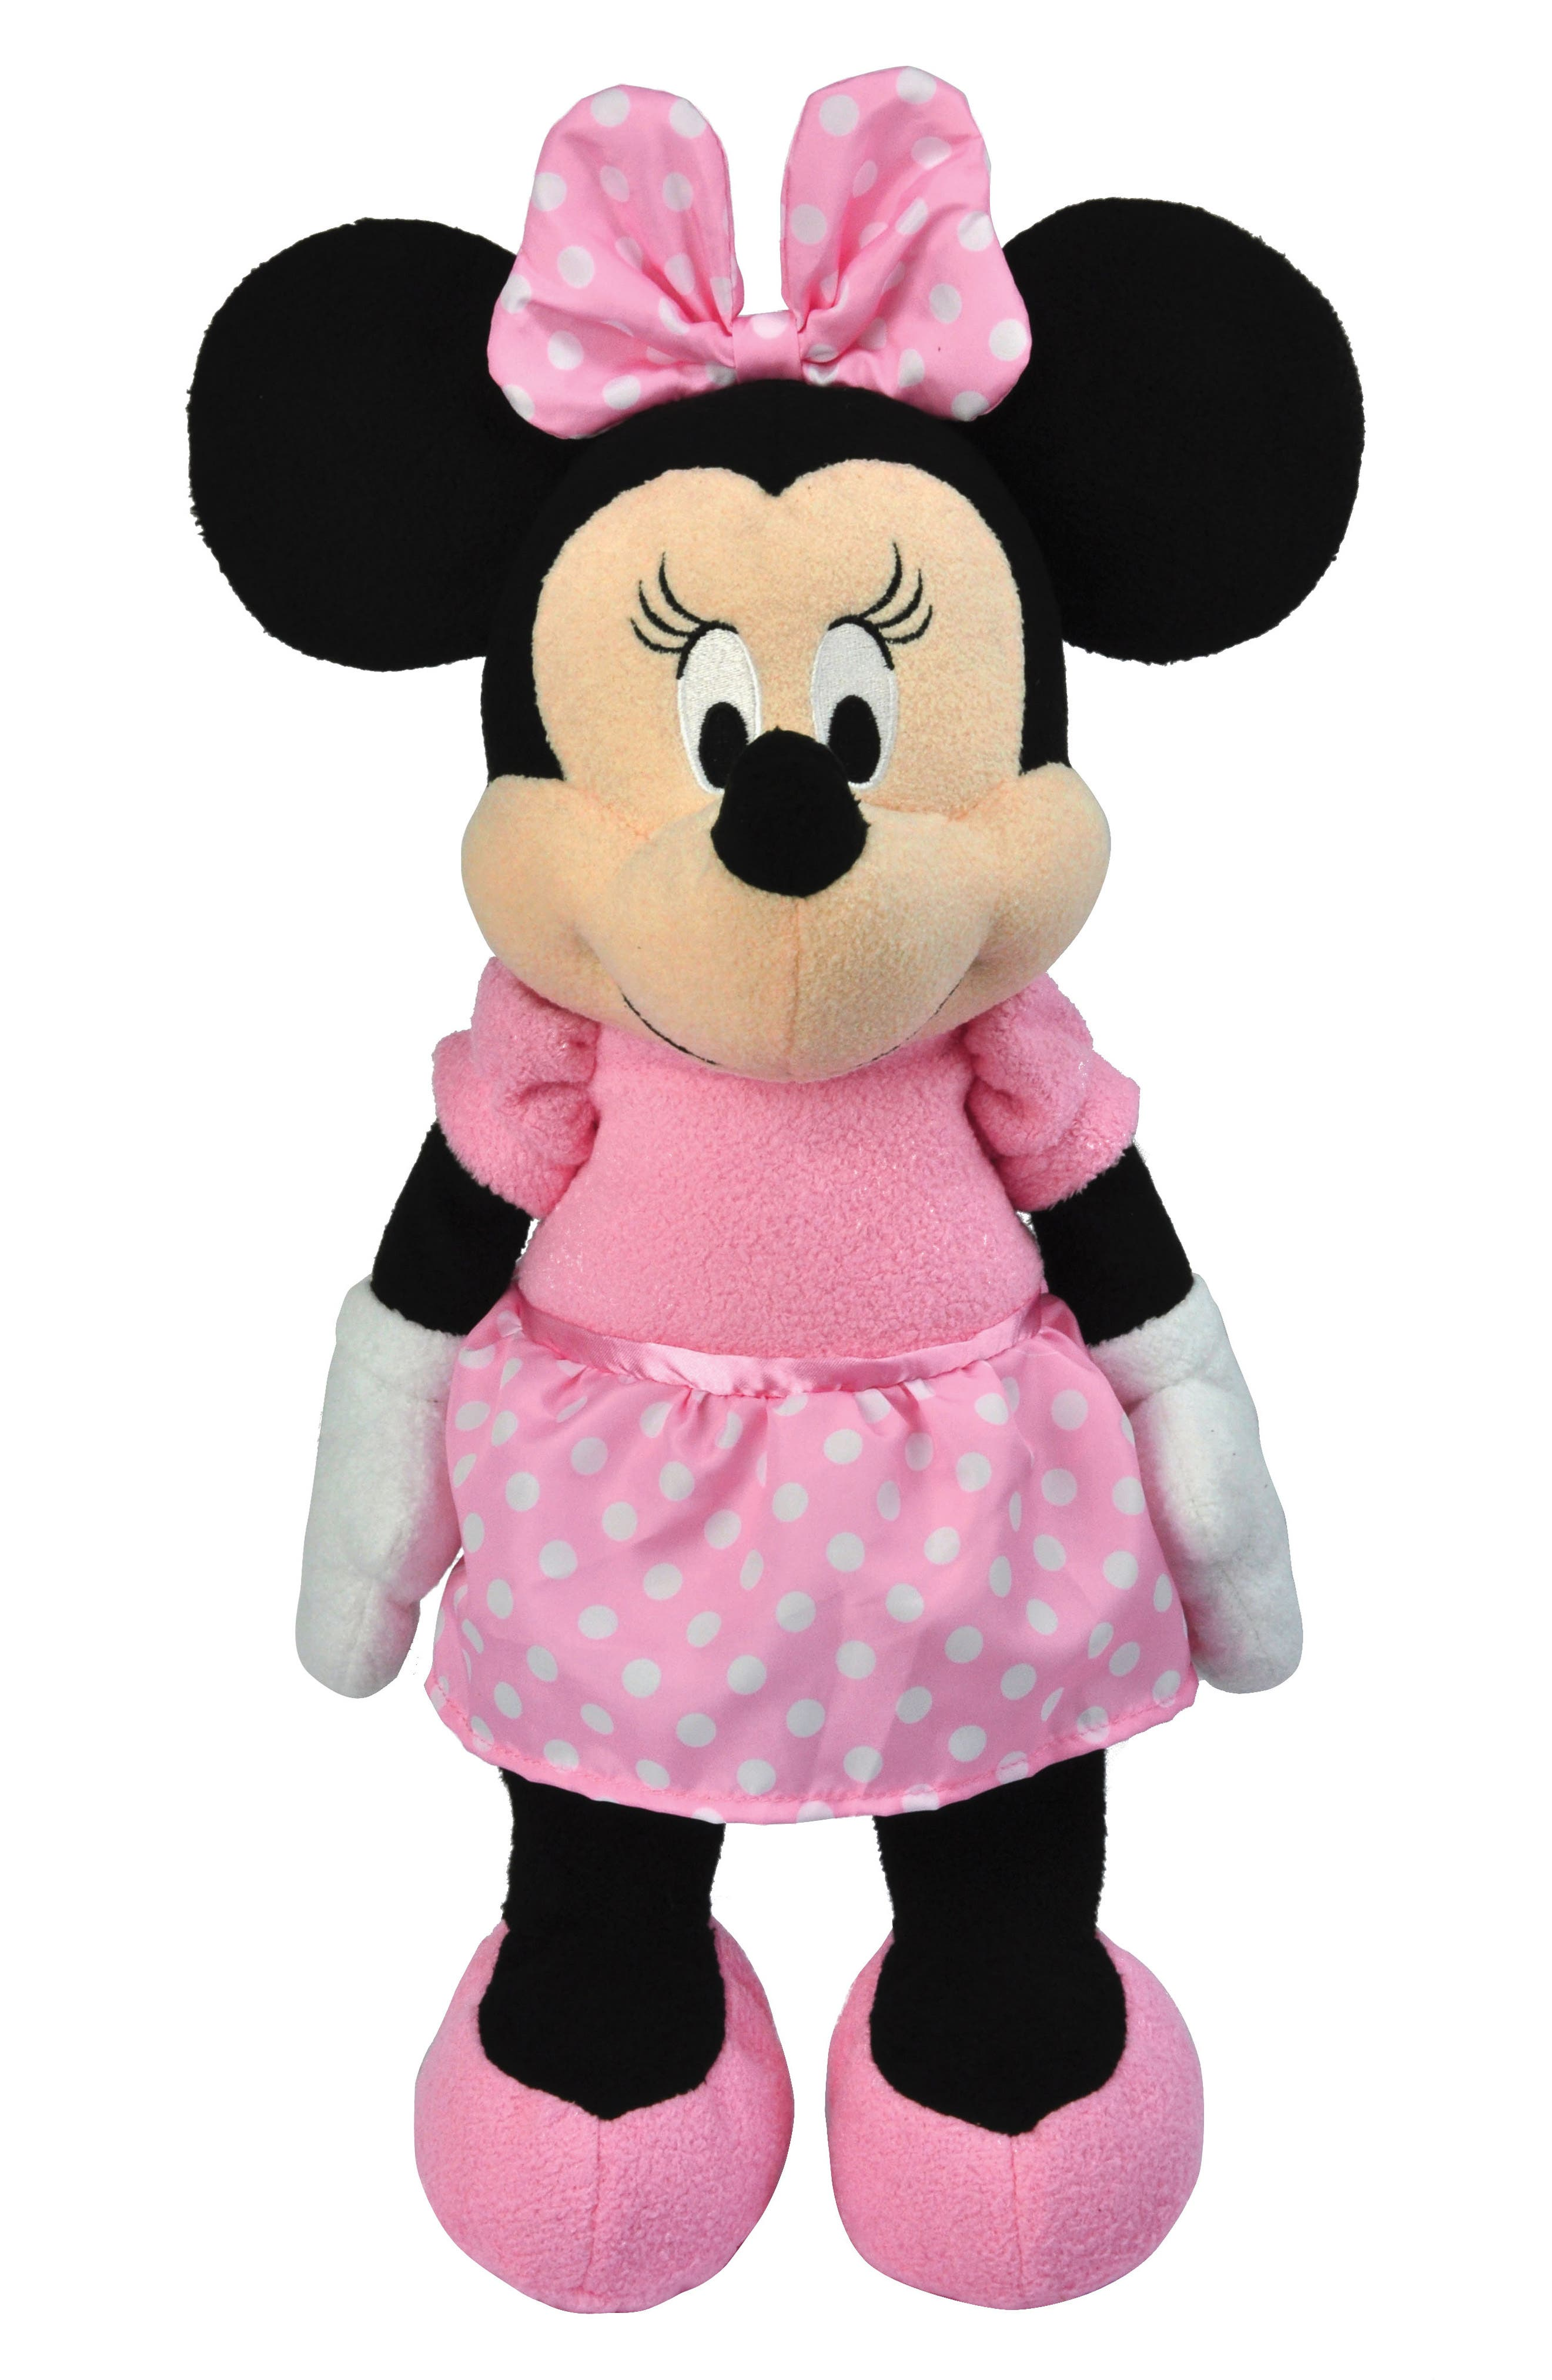 Minnie Mouse Floppy Plush Toy,                             Main thumbnail 1, color,                             PINK